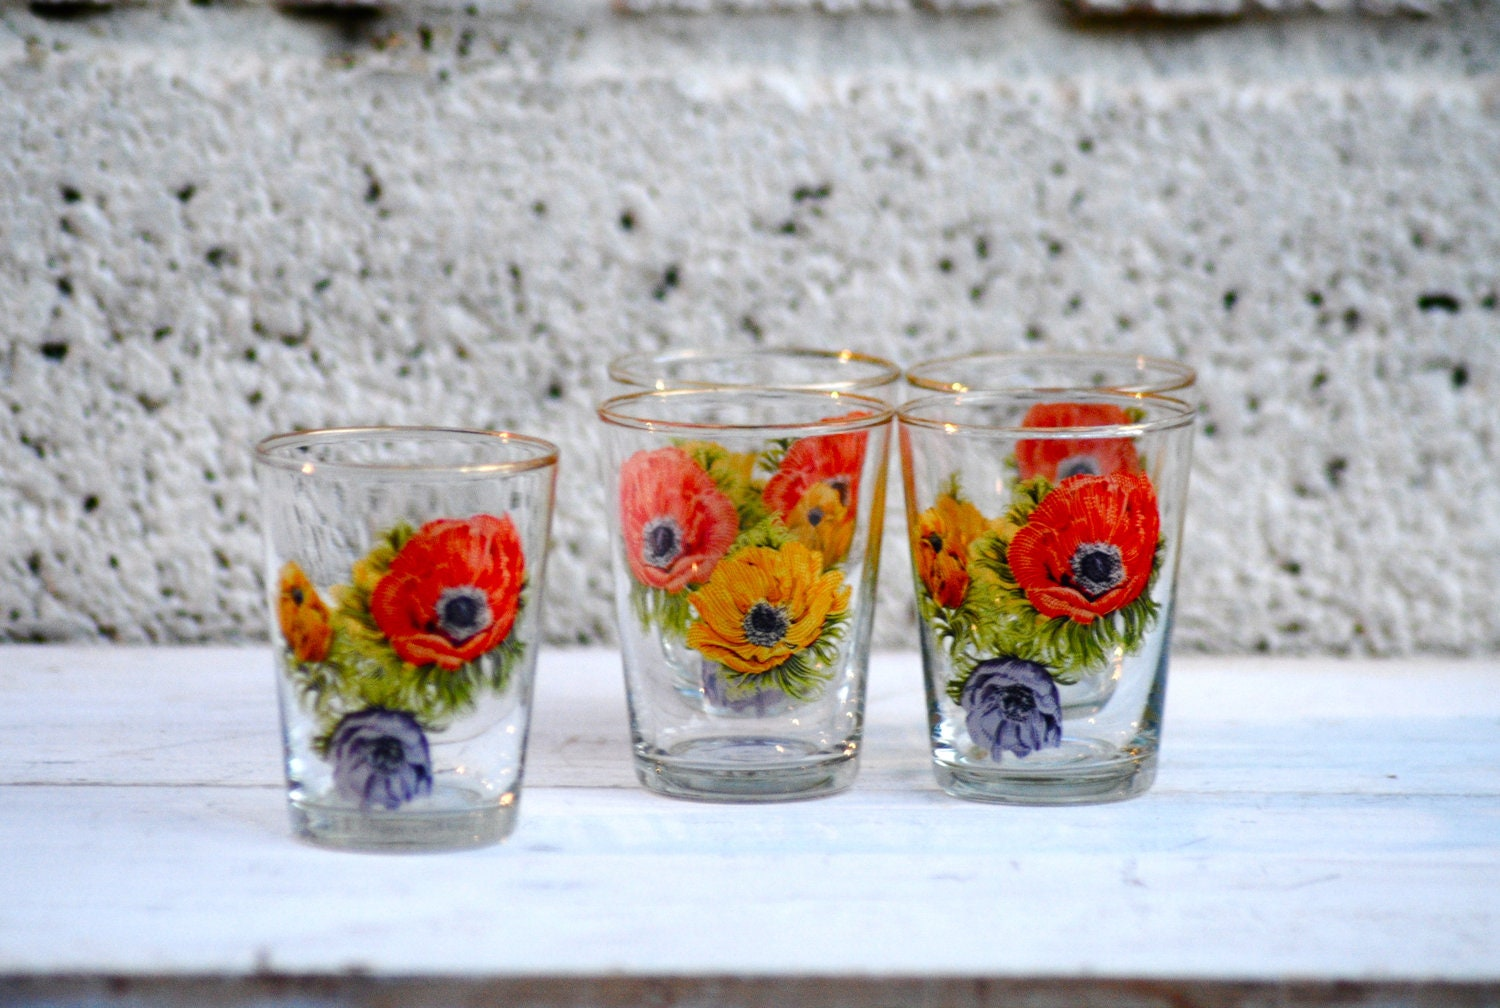 Vintage Shot Glasses set of 5 Retro Poppy Flower design Autumn Poppies Yellow Gold Orange